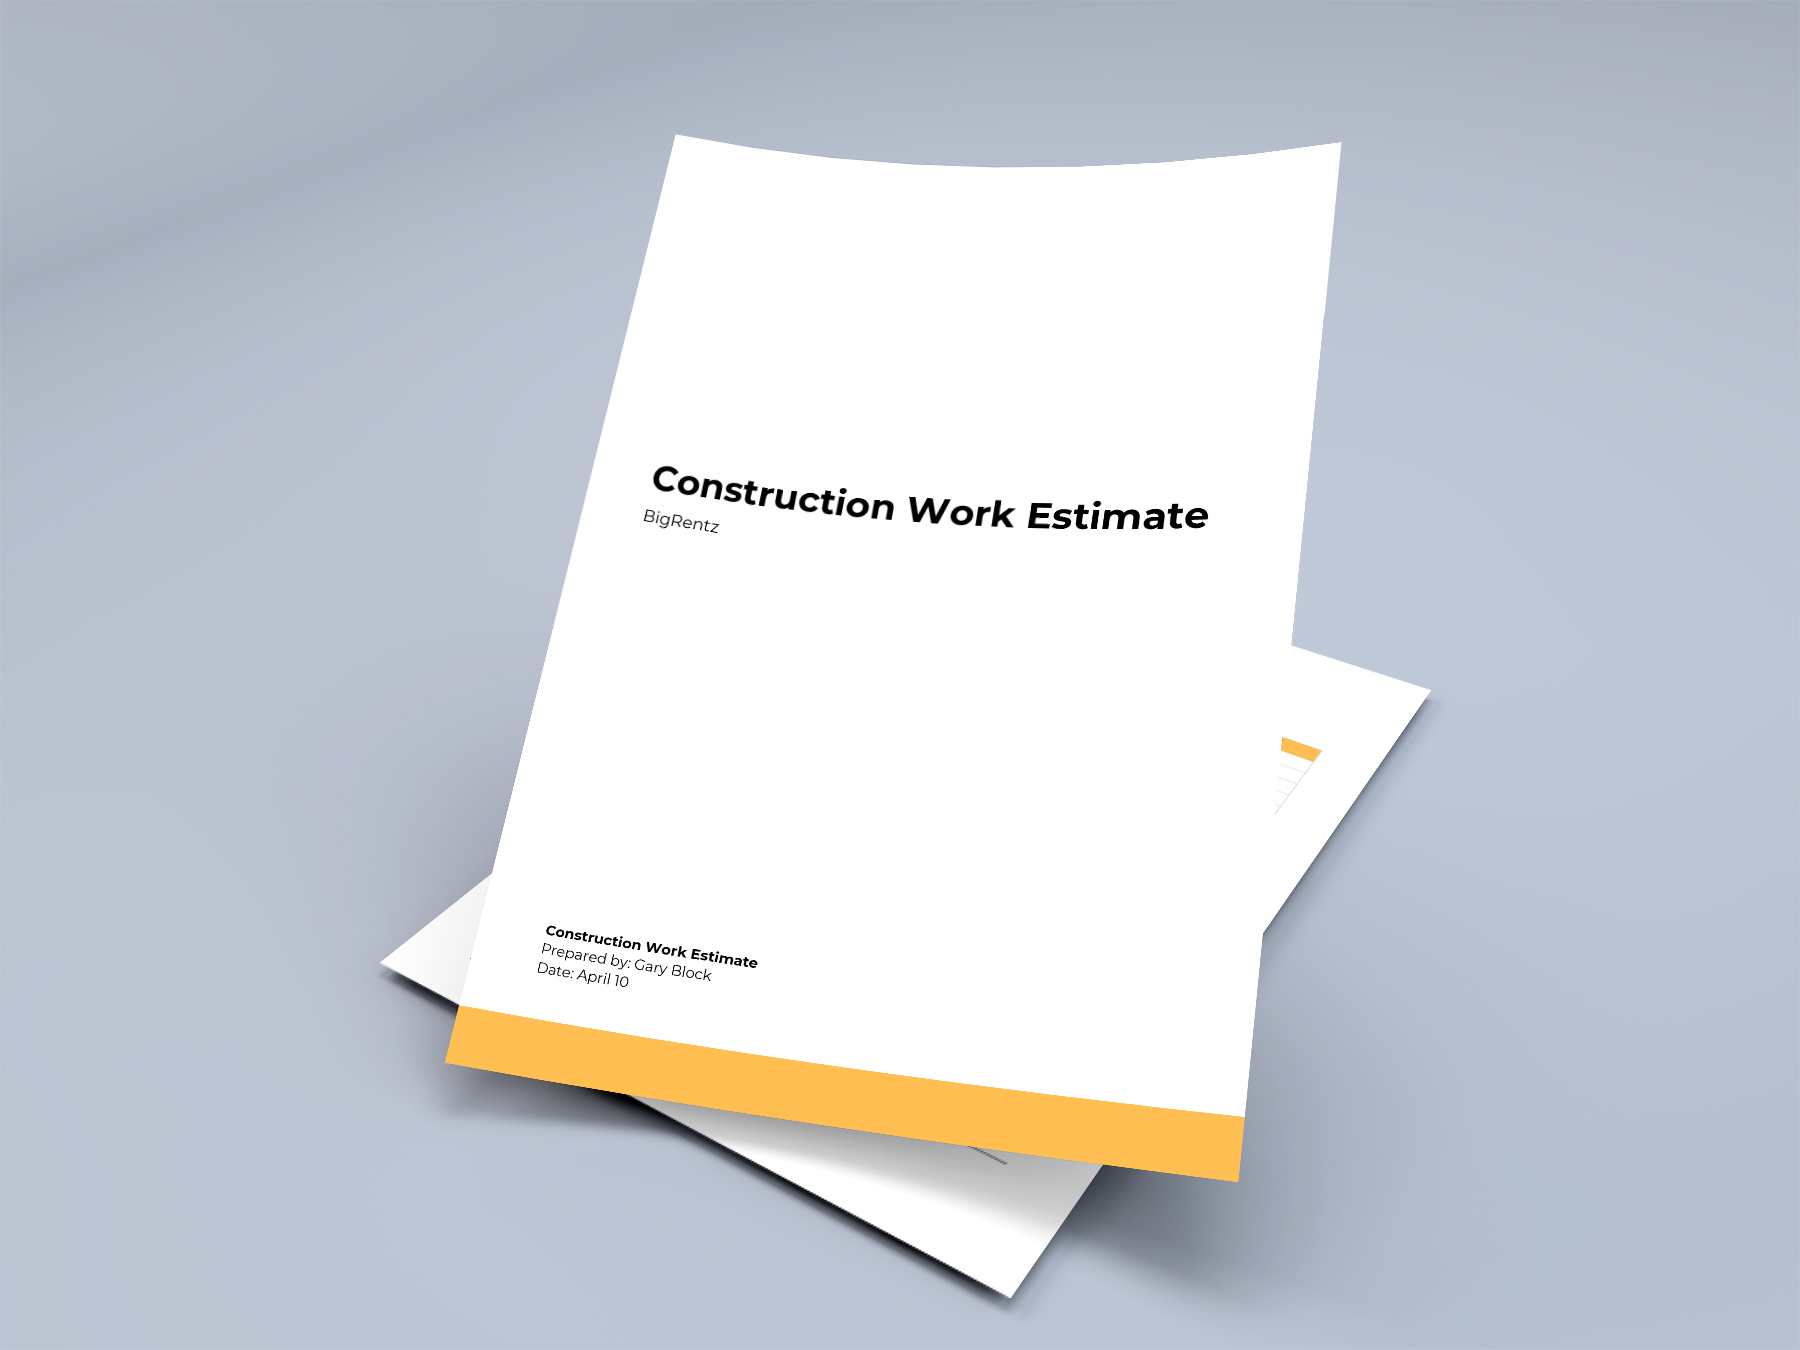 Construction Estimate Template (Free Downloadable PDF, DOC, EXCEL)